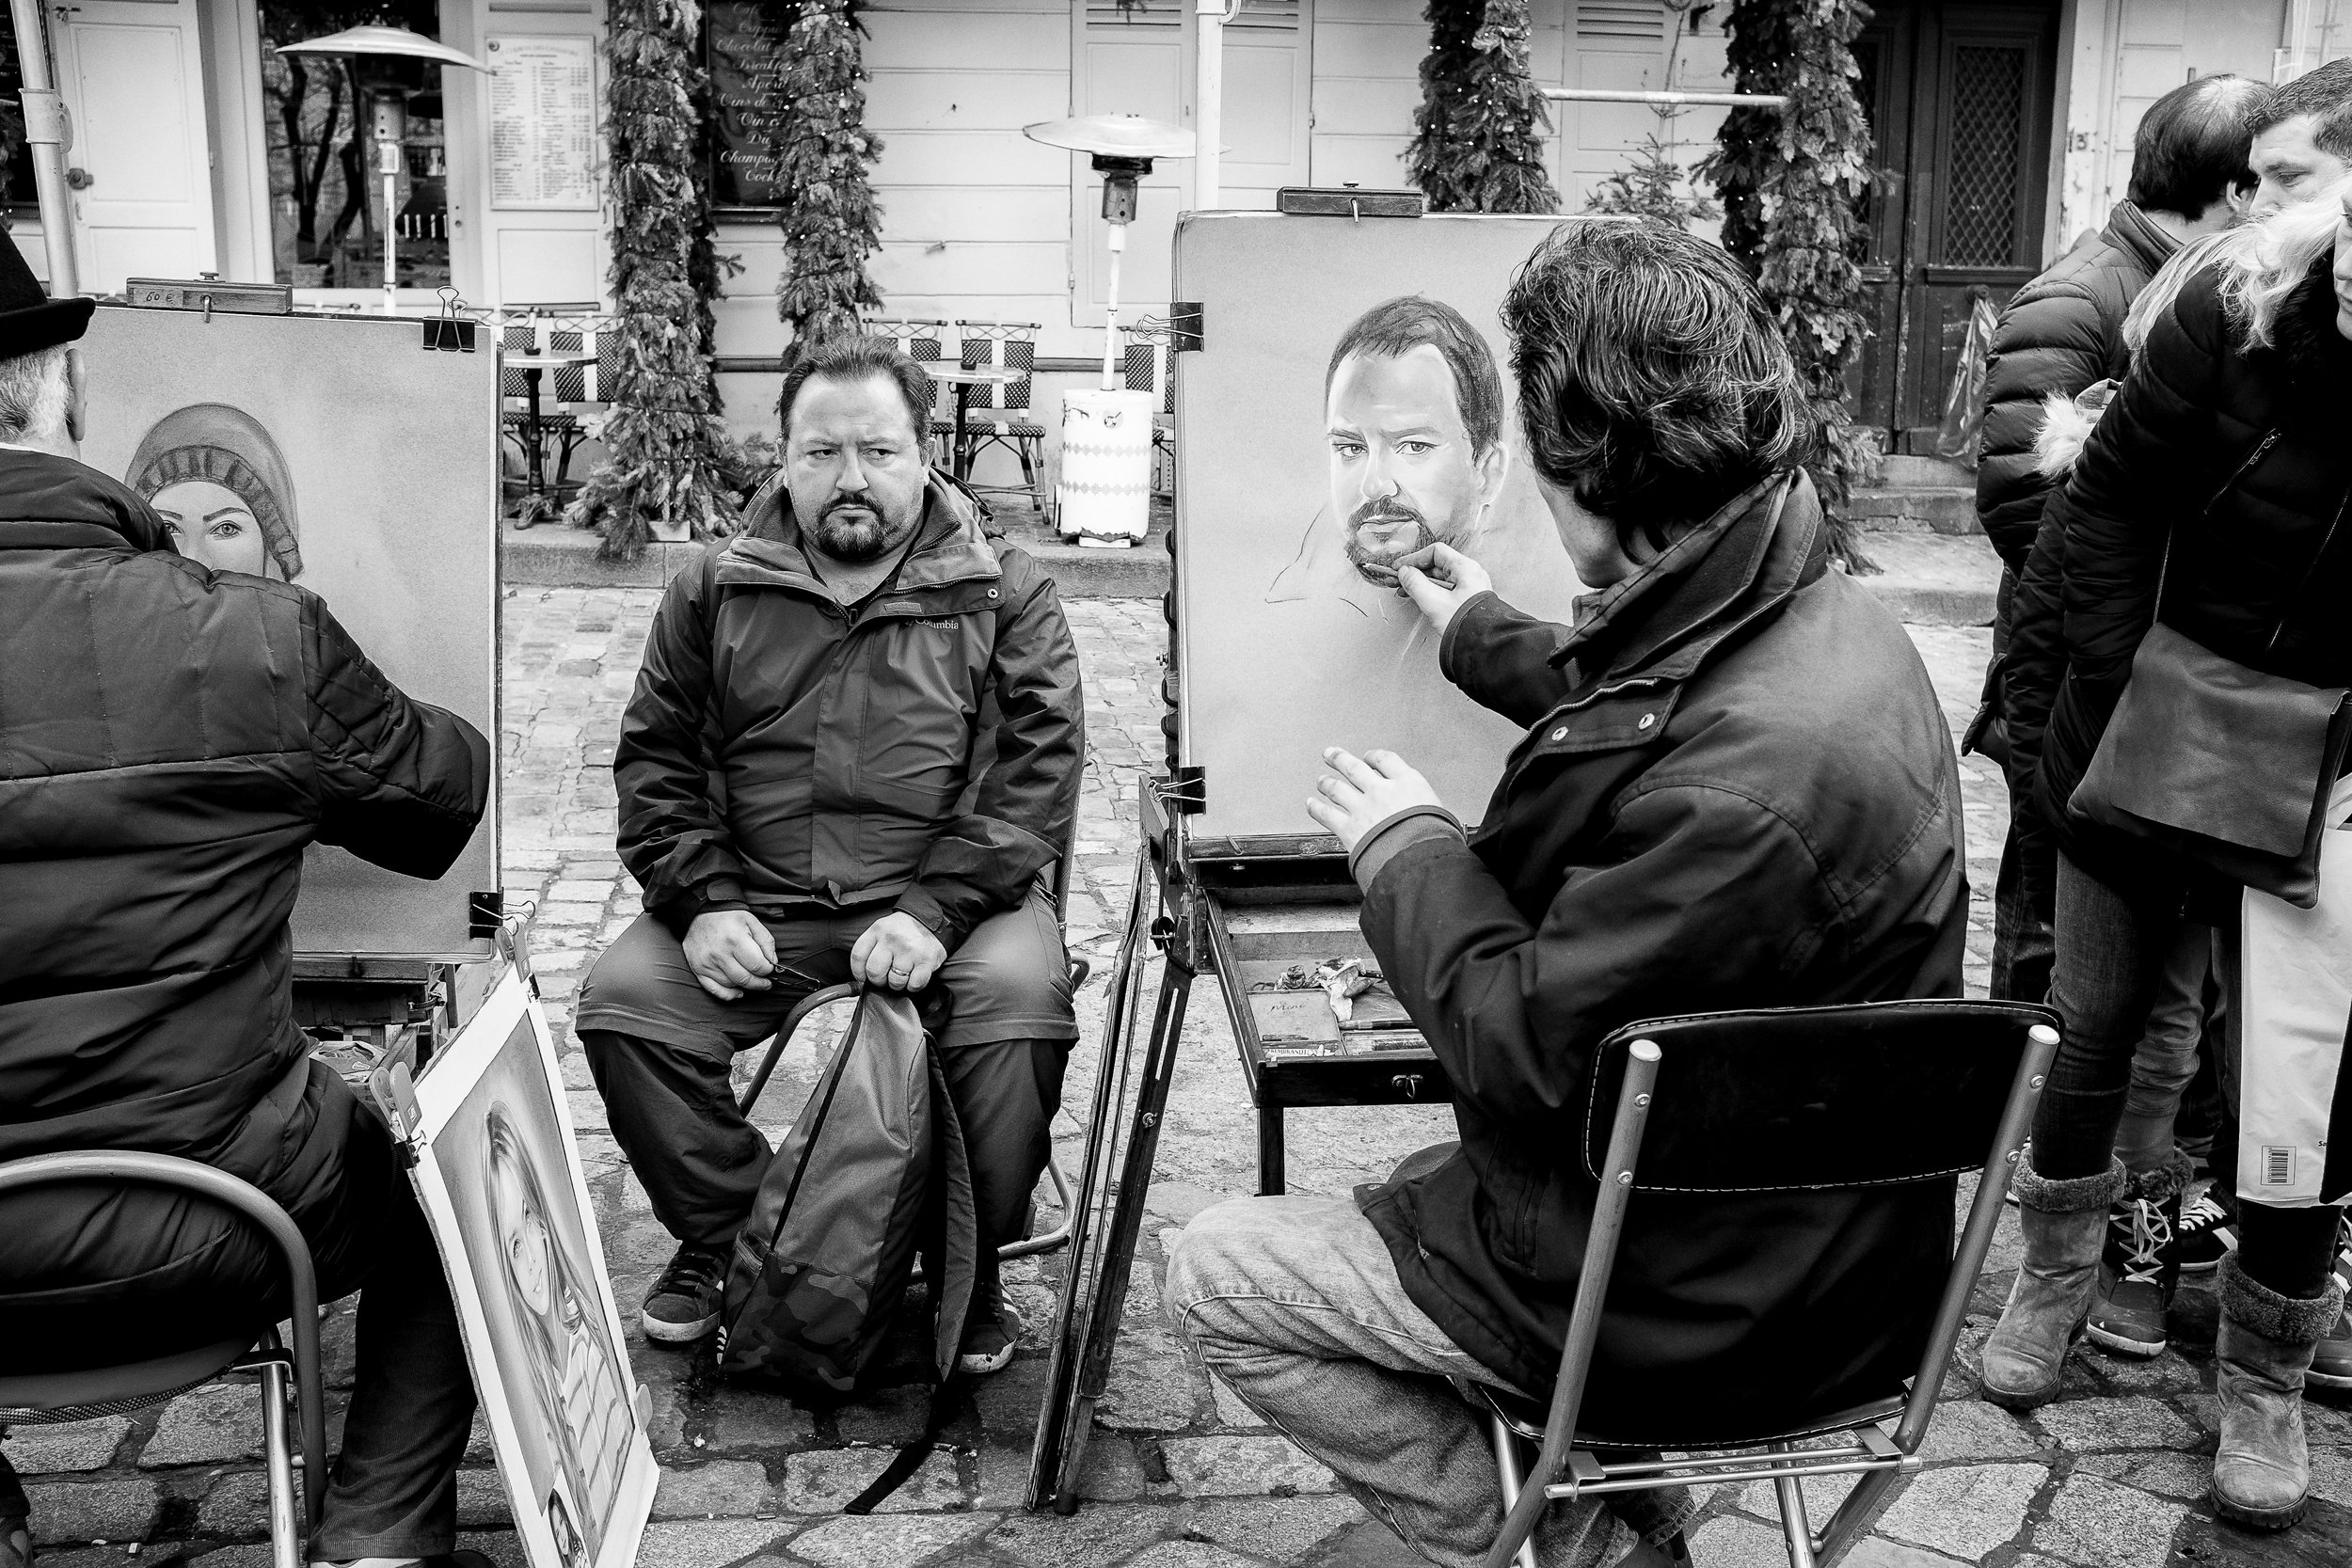 """Artistic license."" January 15, 2017. Montmartre, Paris.   Fujifilm X100s, 23mm, f/5.6, 1/125, ISO 1000."